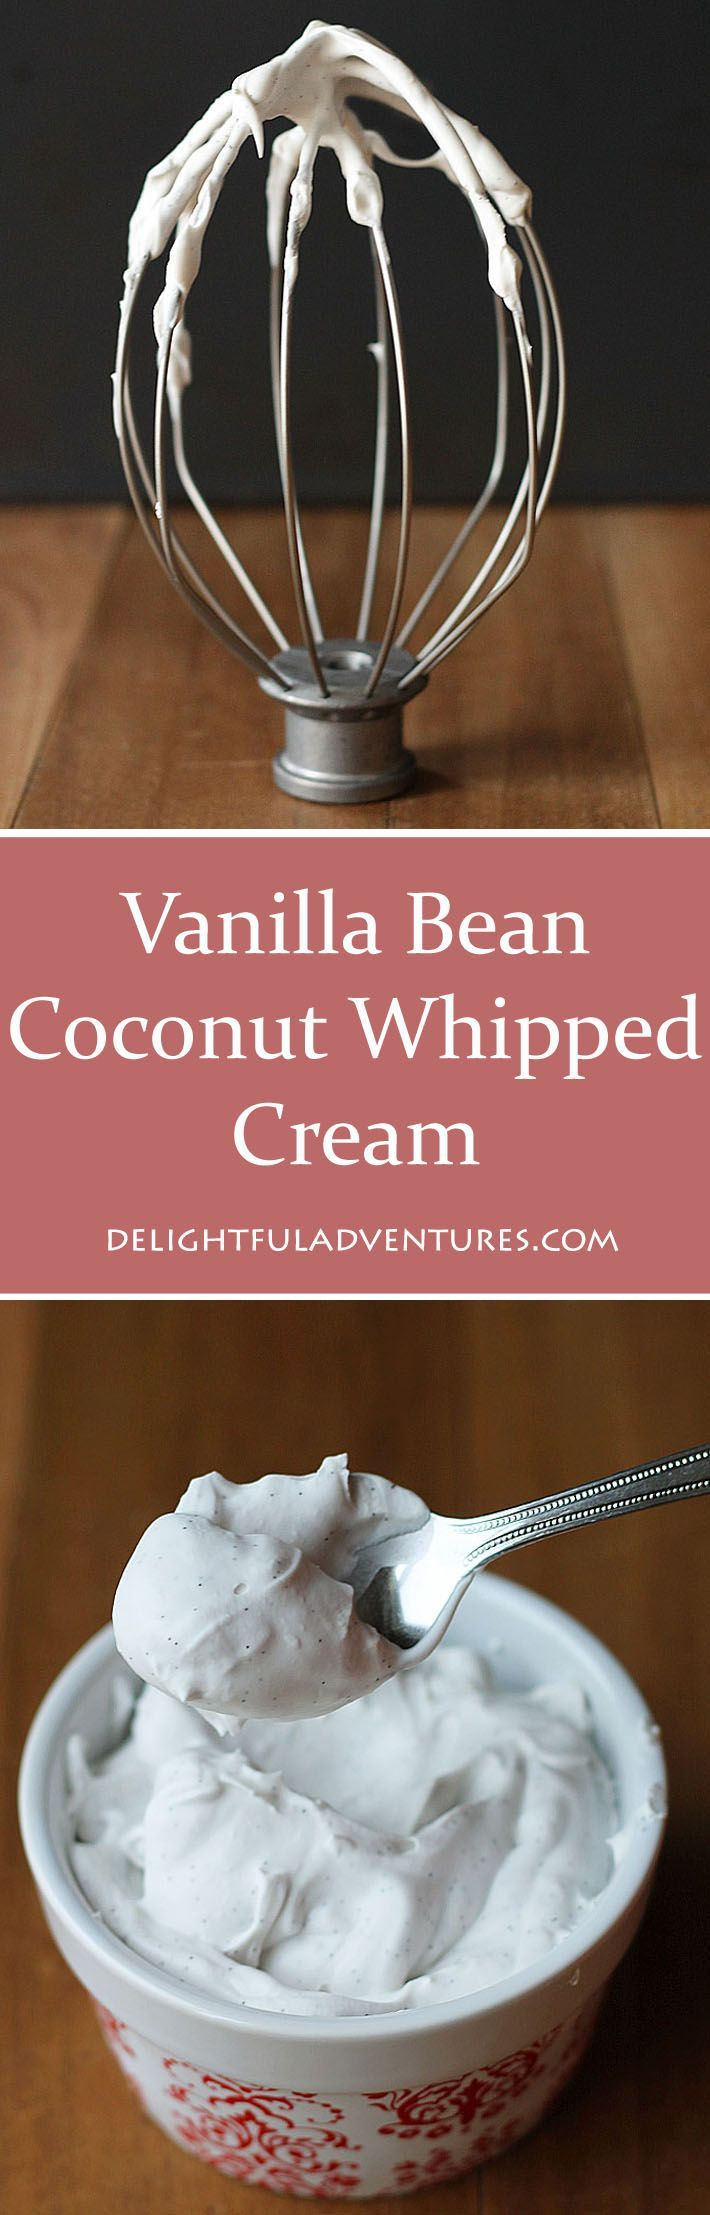 Try this decadent, creamy, dairy-free vanilla bean coconut whipped cream as a delicious (and better!) replacement for regular whipped cream. #vegan #coconutwhippedcream #vegandessert #veganglutenfree